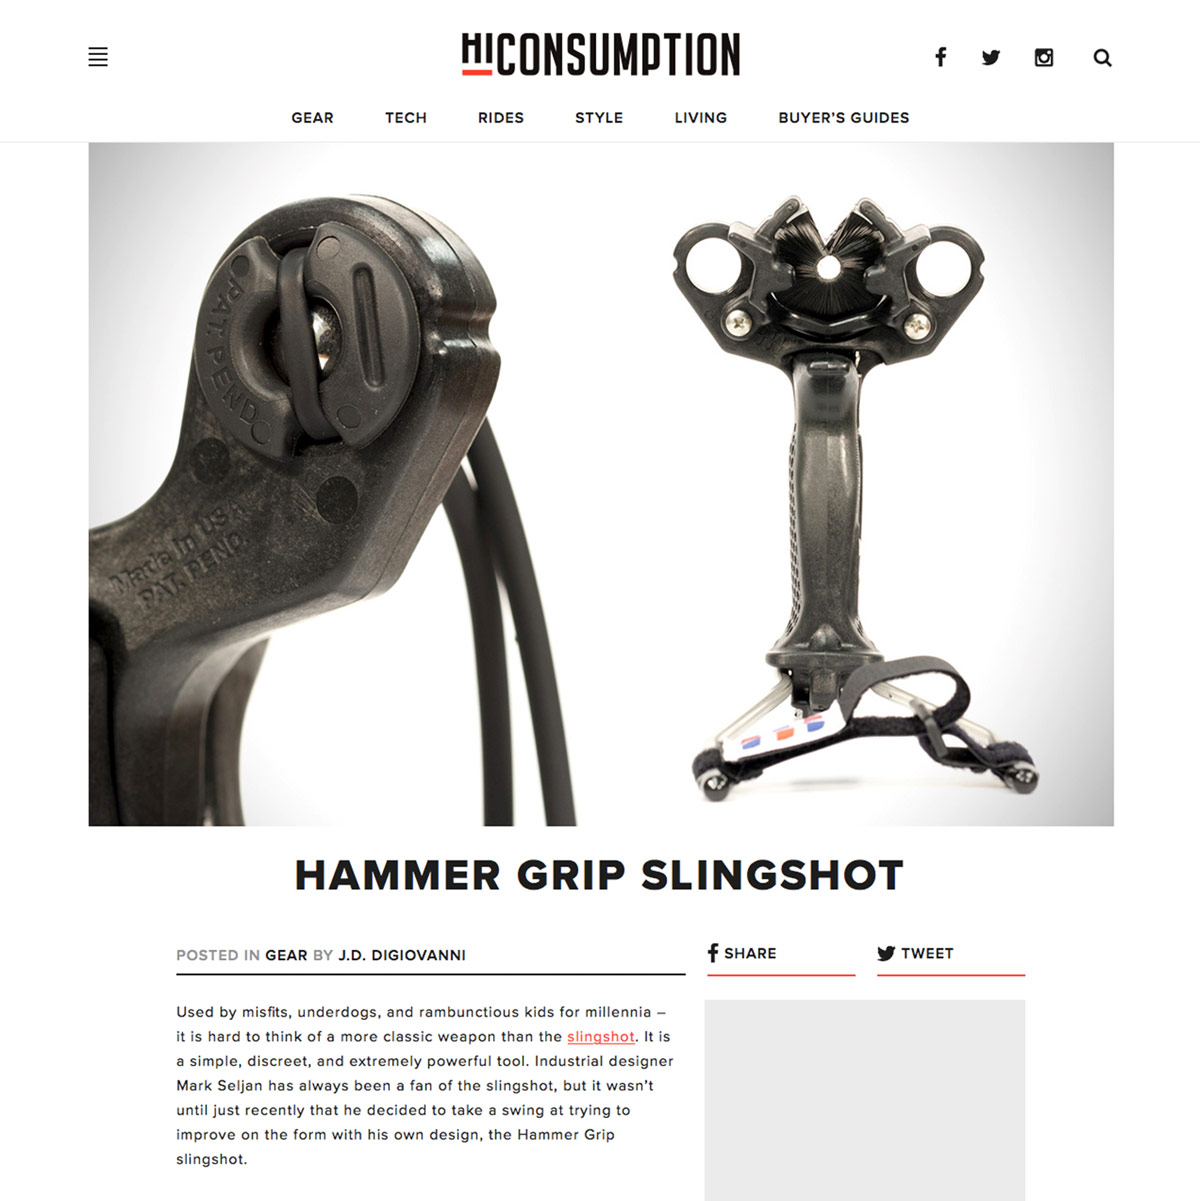 HiConsumption Hammer Slingshot / Slingbow Review